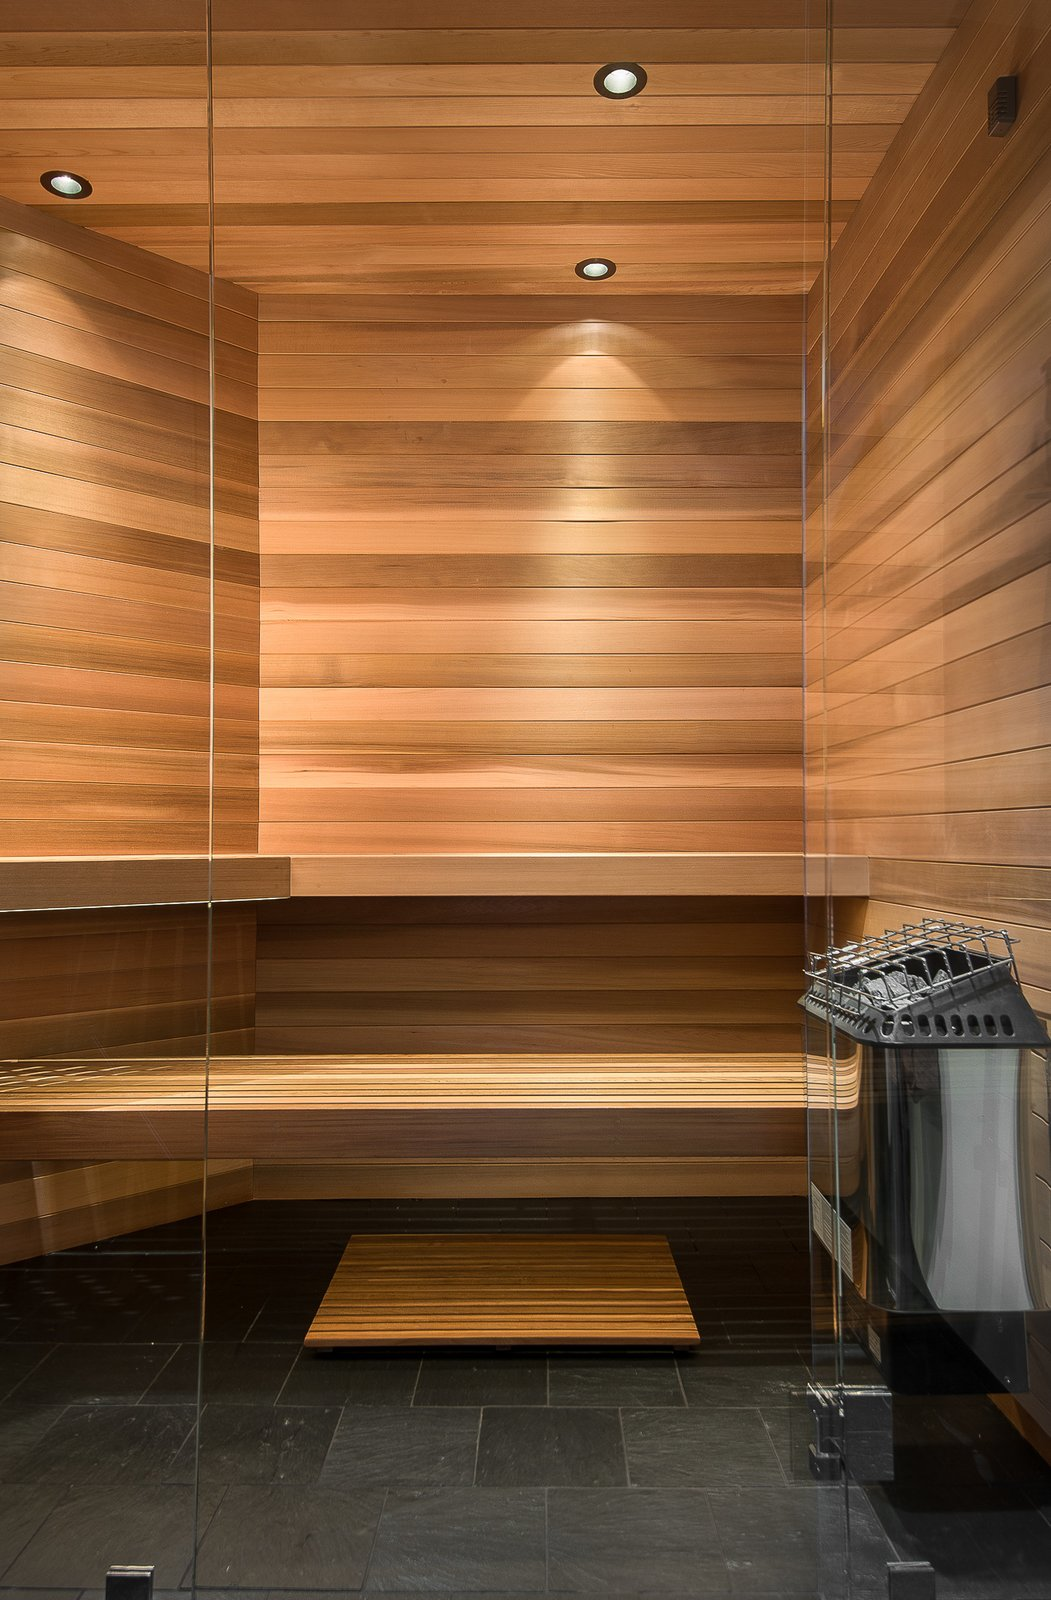 Bath Room, Slate Floor, and Ceiling Lighting Sauna  House in the Woods by Kim Smith